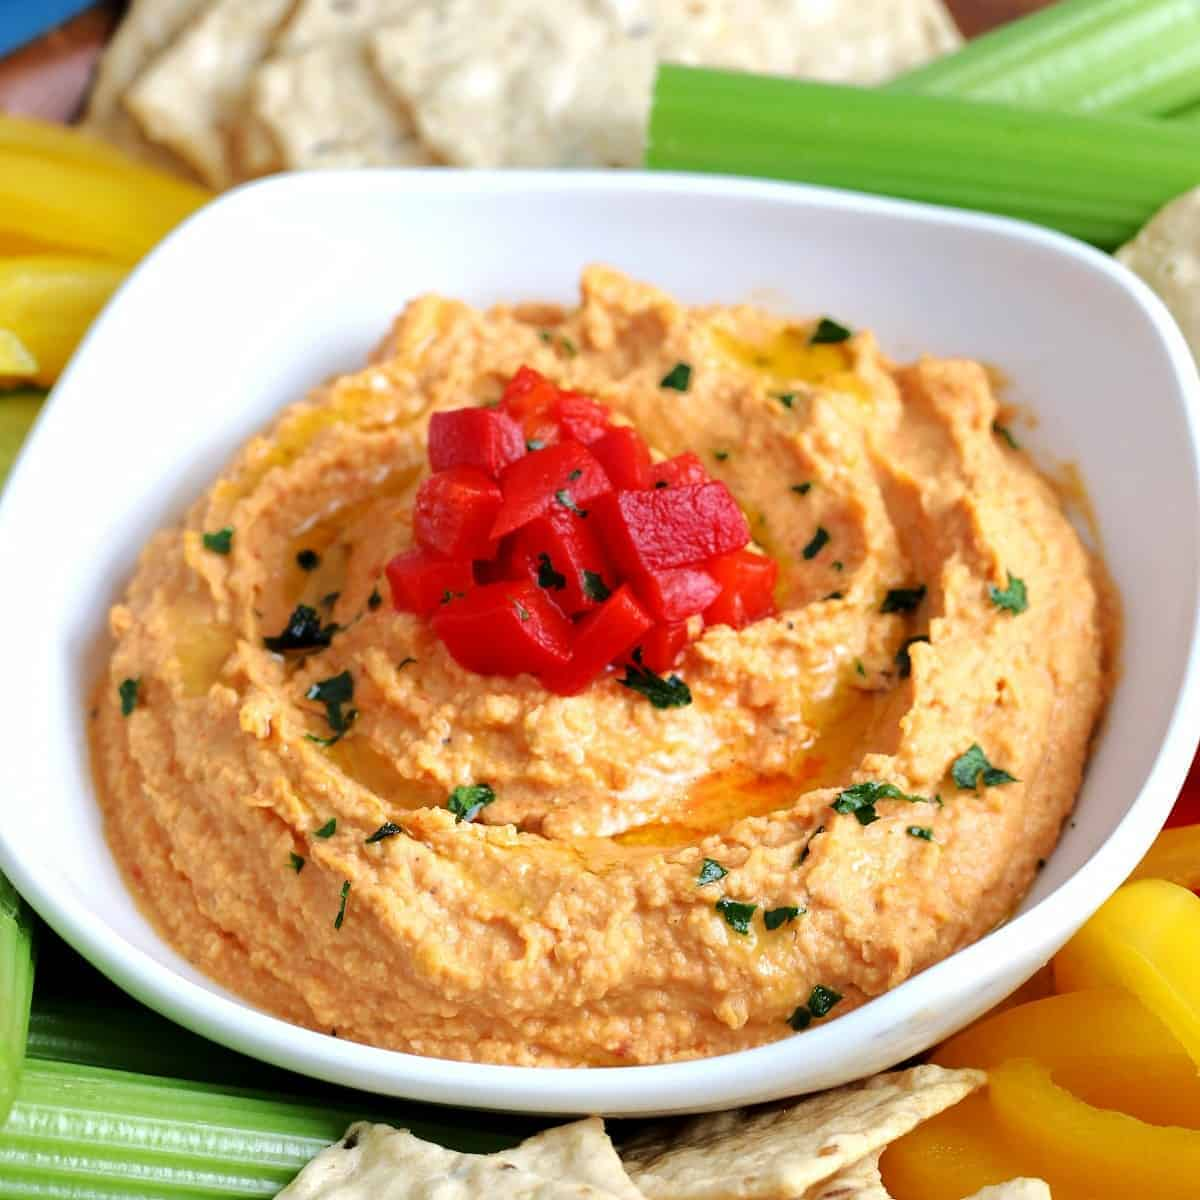 Tilted white bowl full of red pepper hummus with veggies around.